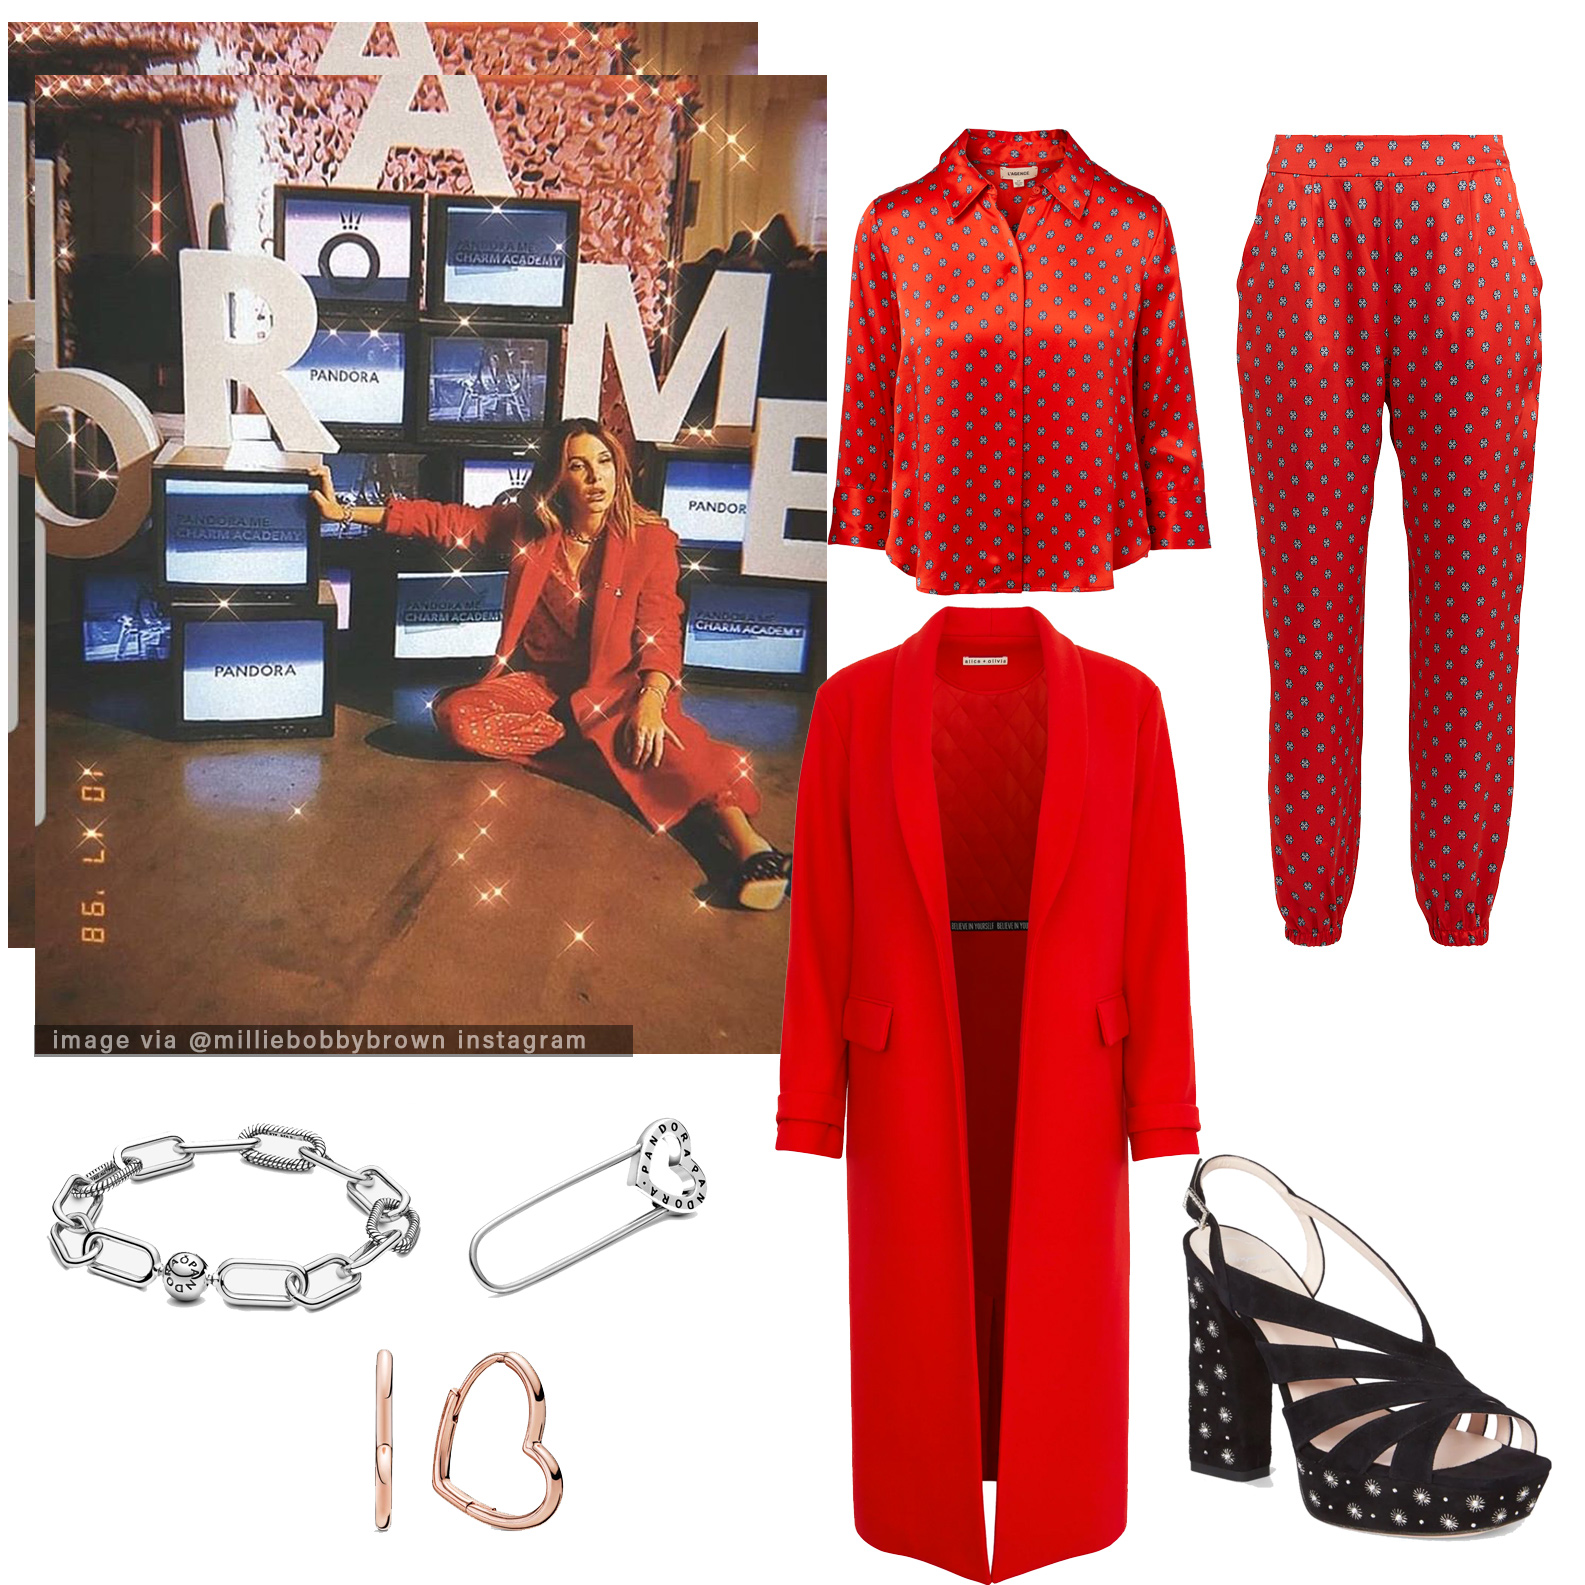 Get Millie Bobby Brown outfit for Pandora ad campaign